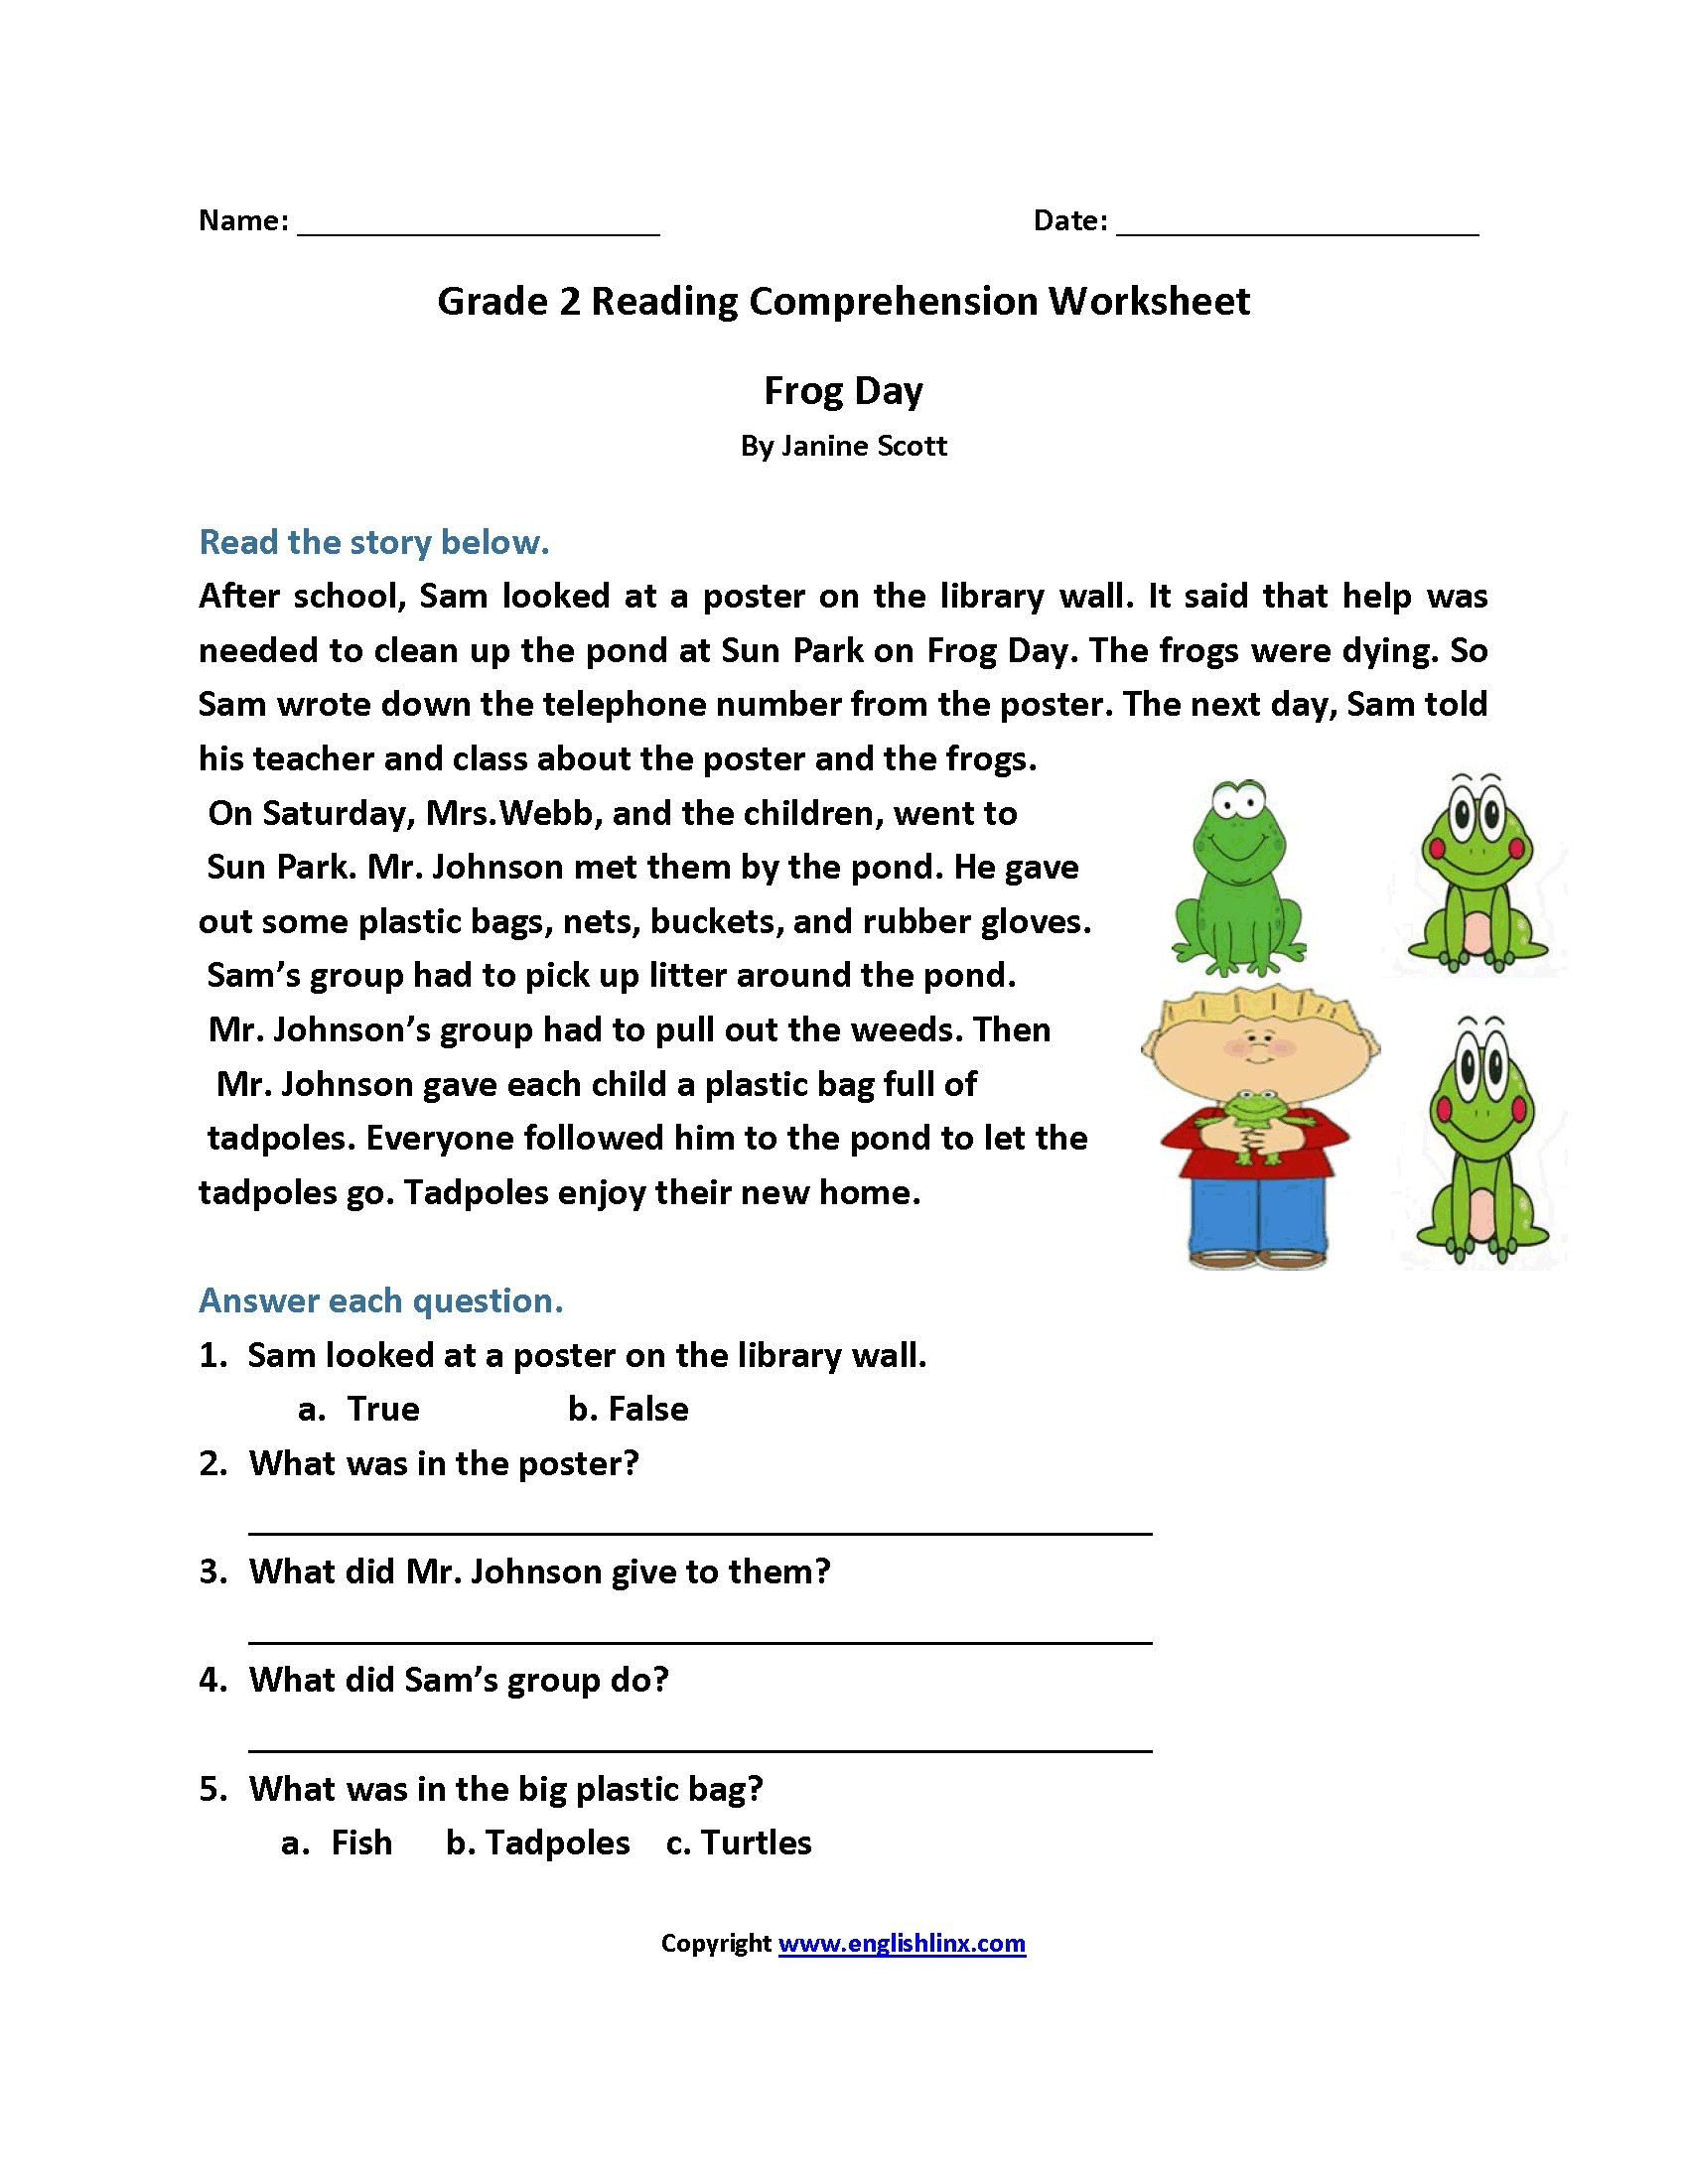 Reading Comprehension Practice Questions - Comprehension Passages | Free Printable Worksheets Reading Comprehension 5Th Grade